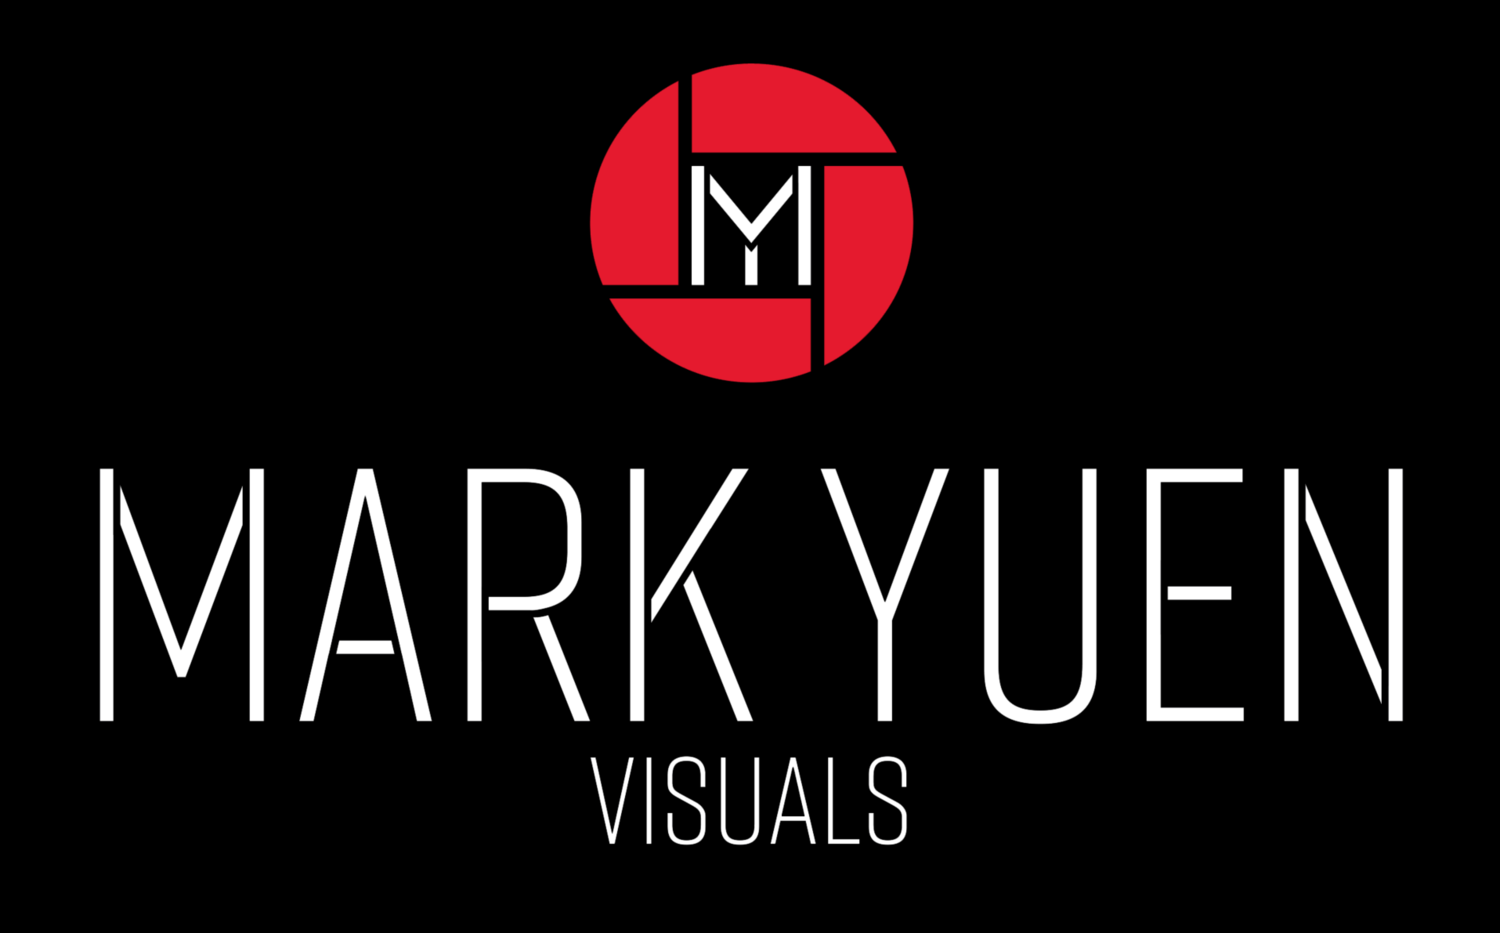 Mark Yuen Visuals